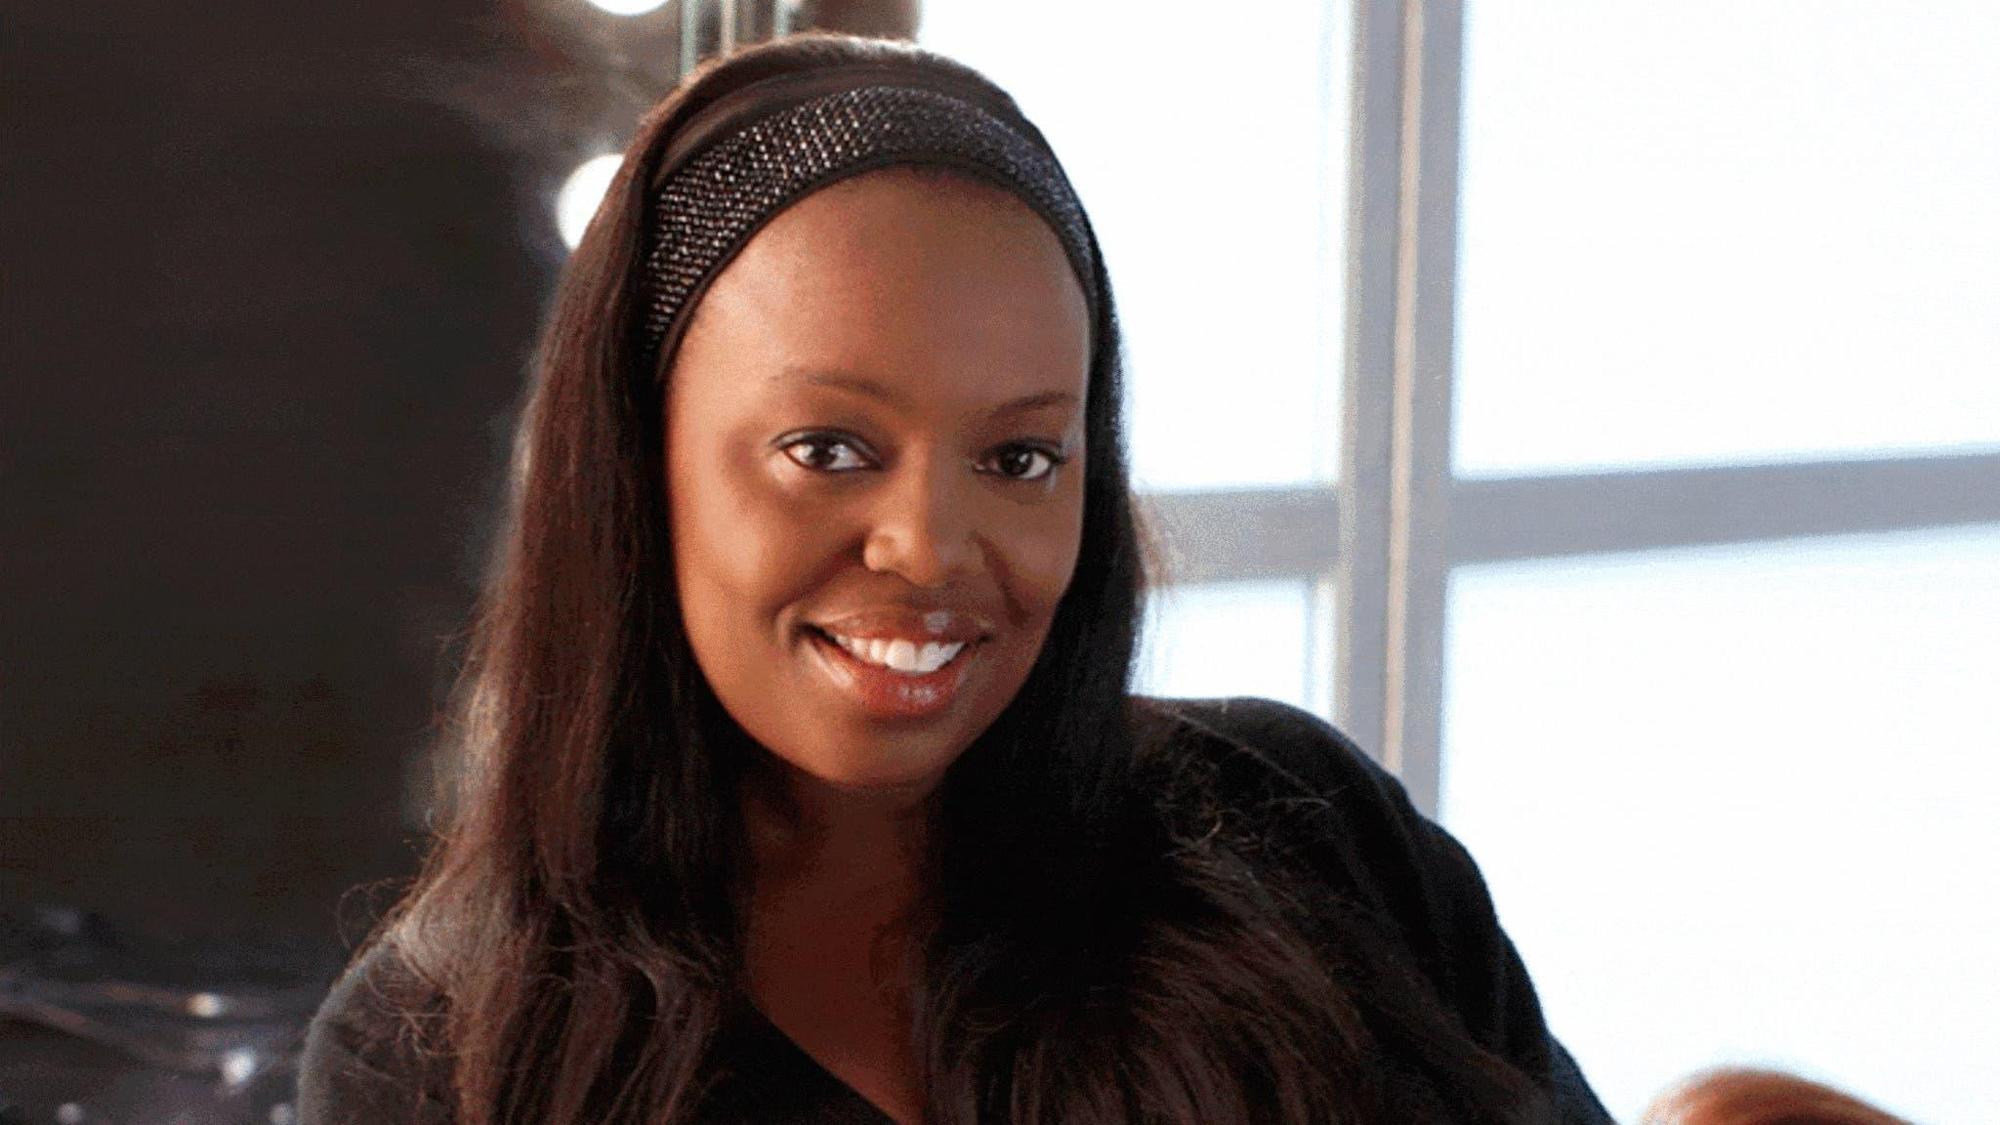 Influential makeup artist Pat McGrath 'delighted and humbled' to be made dame